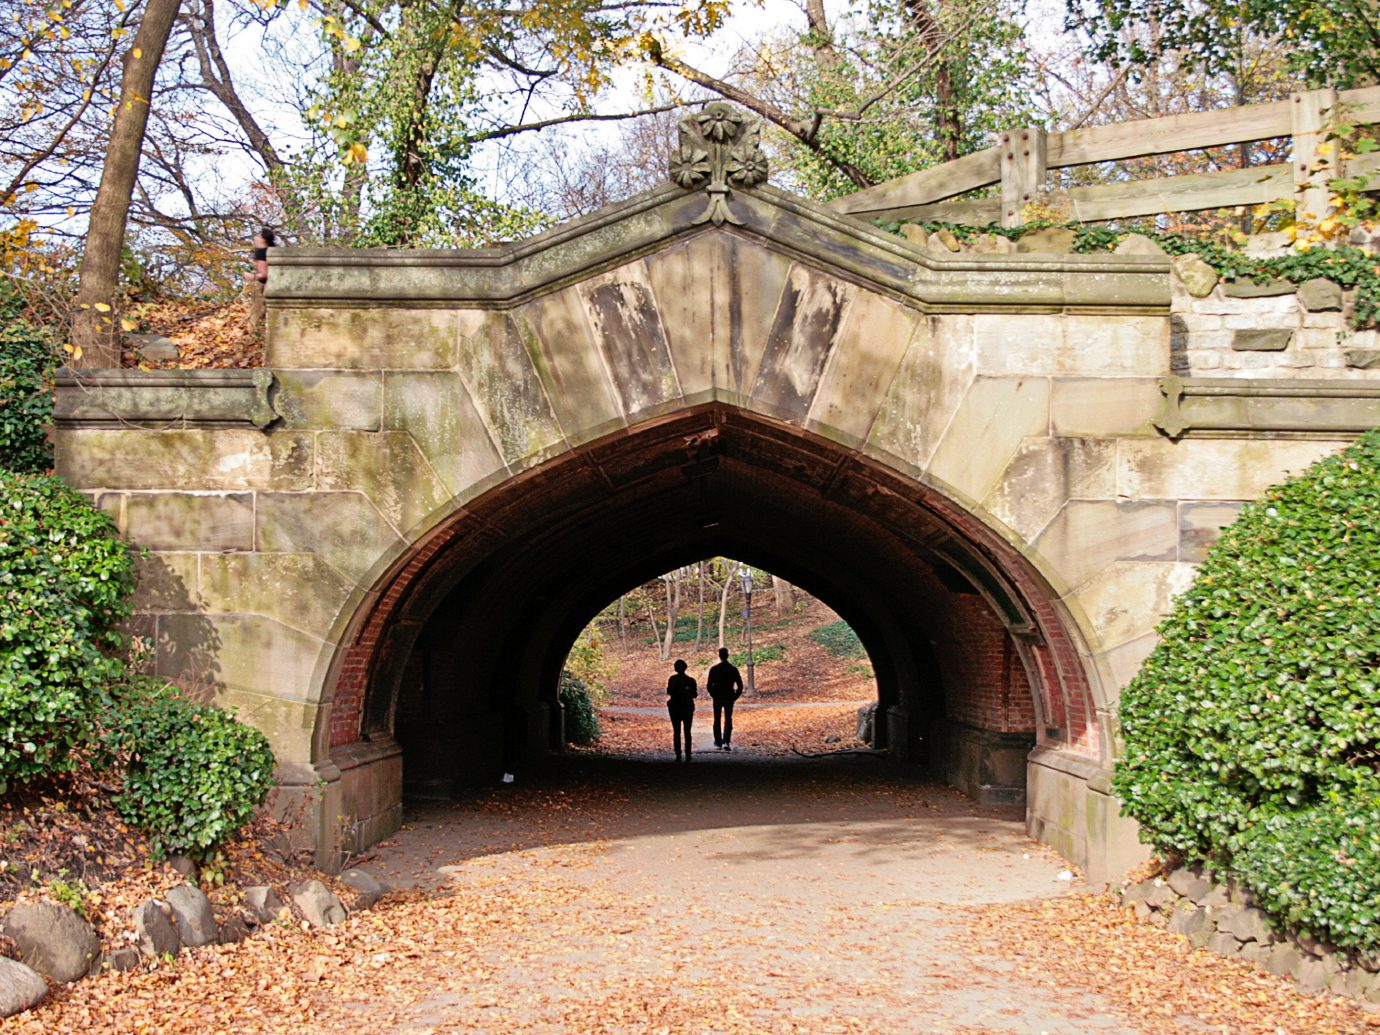 Bridge in Prospect Park, Brooklyn